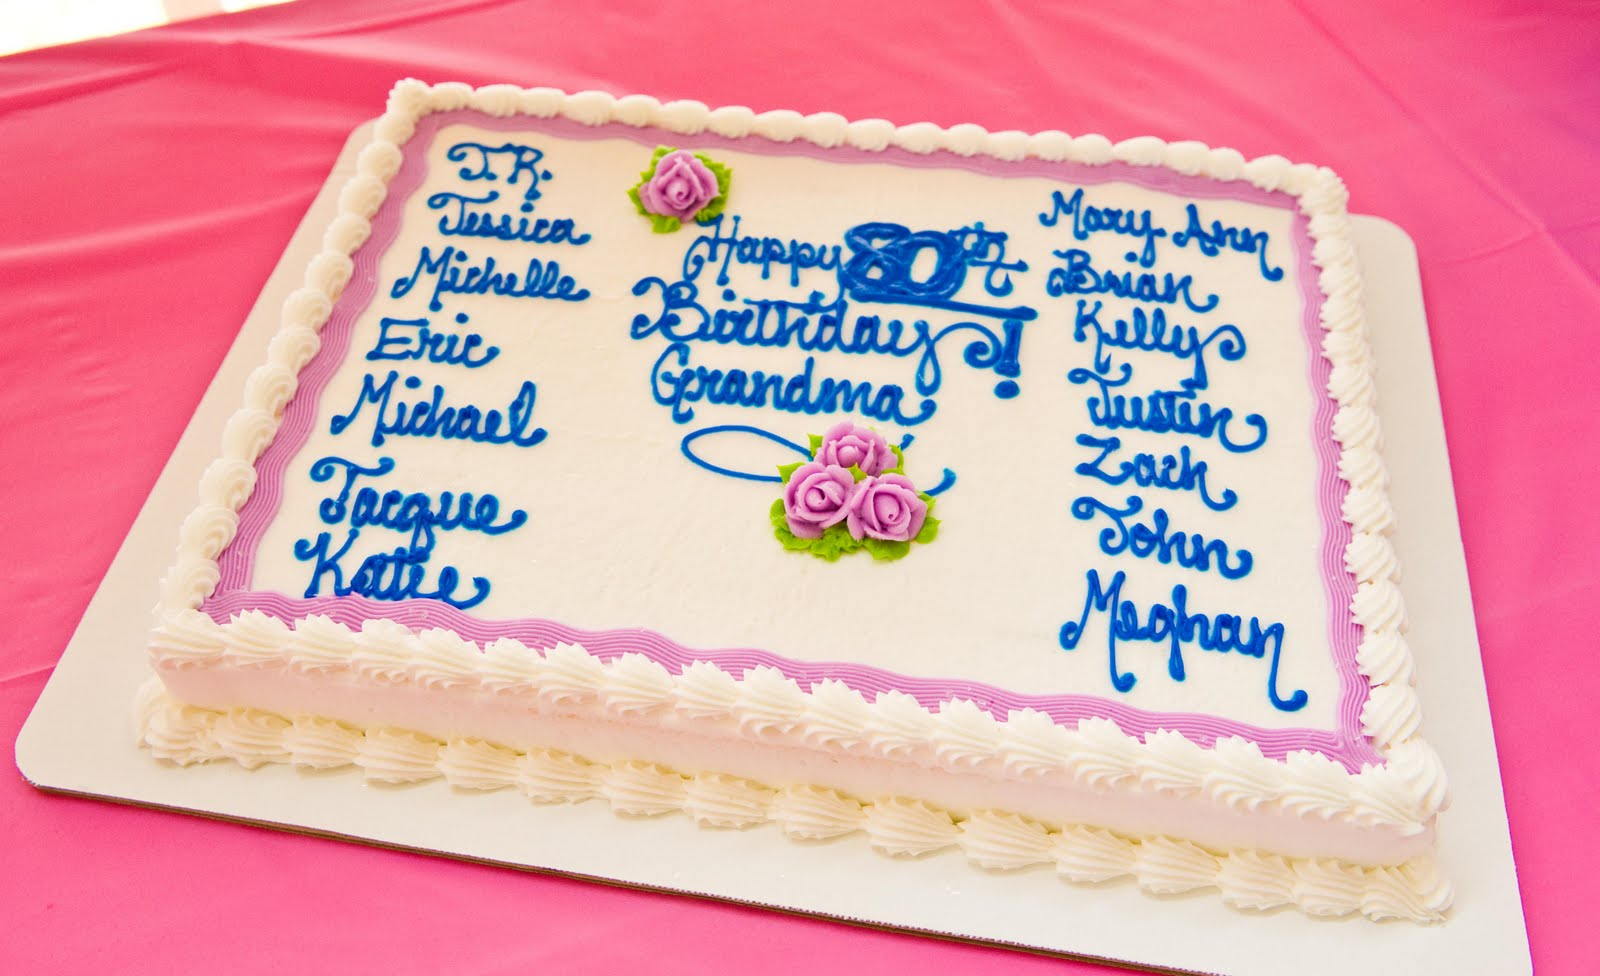 Birthday Cake Quotes For Mother Happy birthday mom quotes and